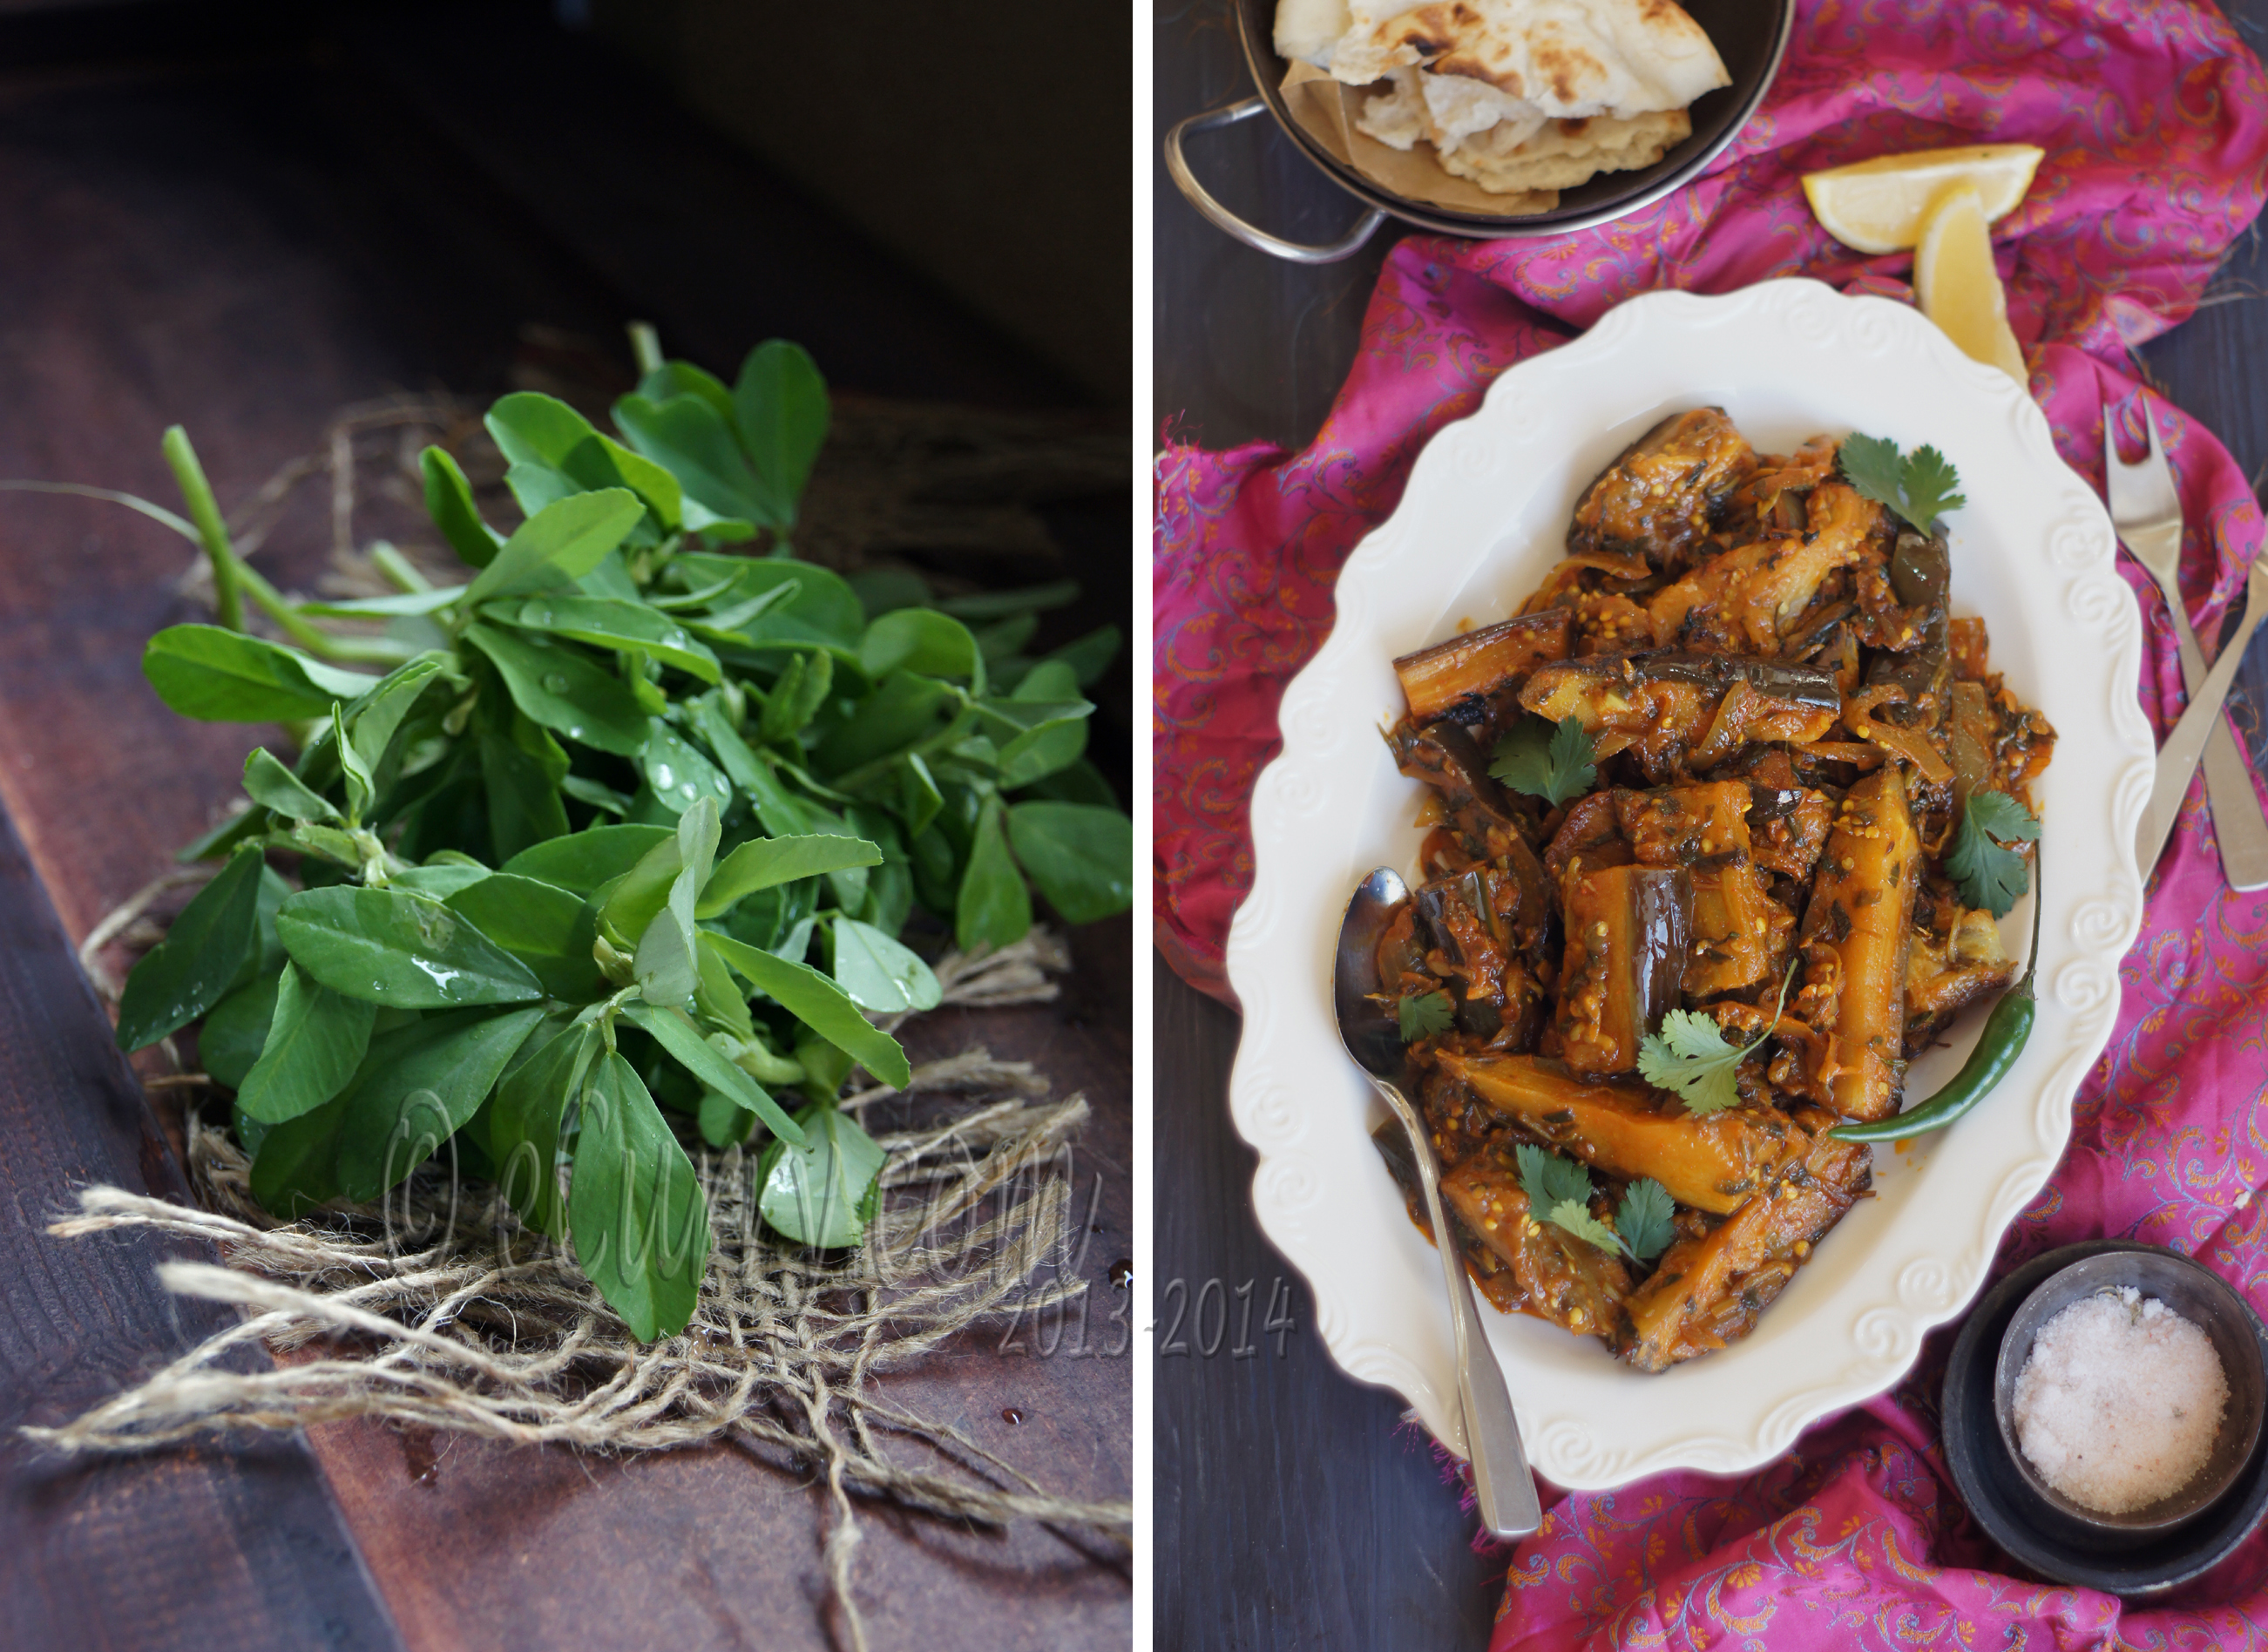 Methi Baingan: Eggplant with Fenugreek Leaves | eCurry - The Recipe ...